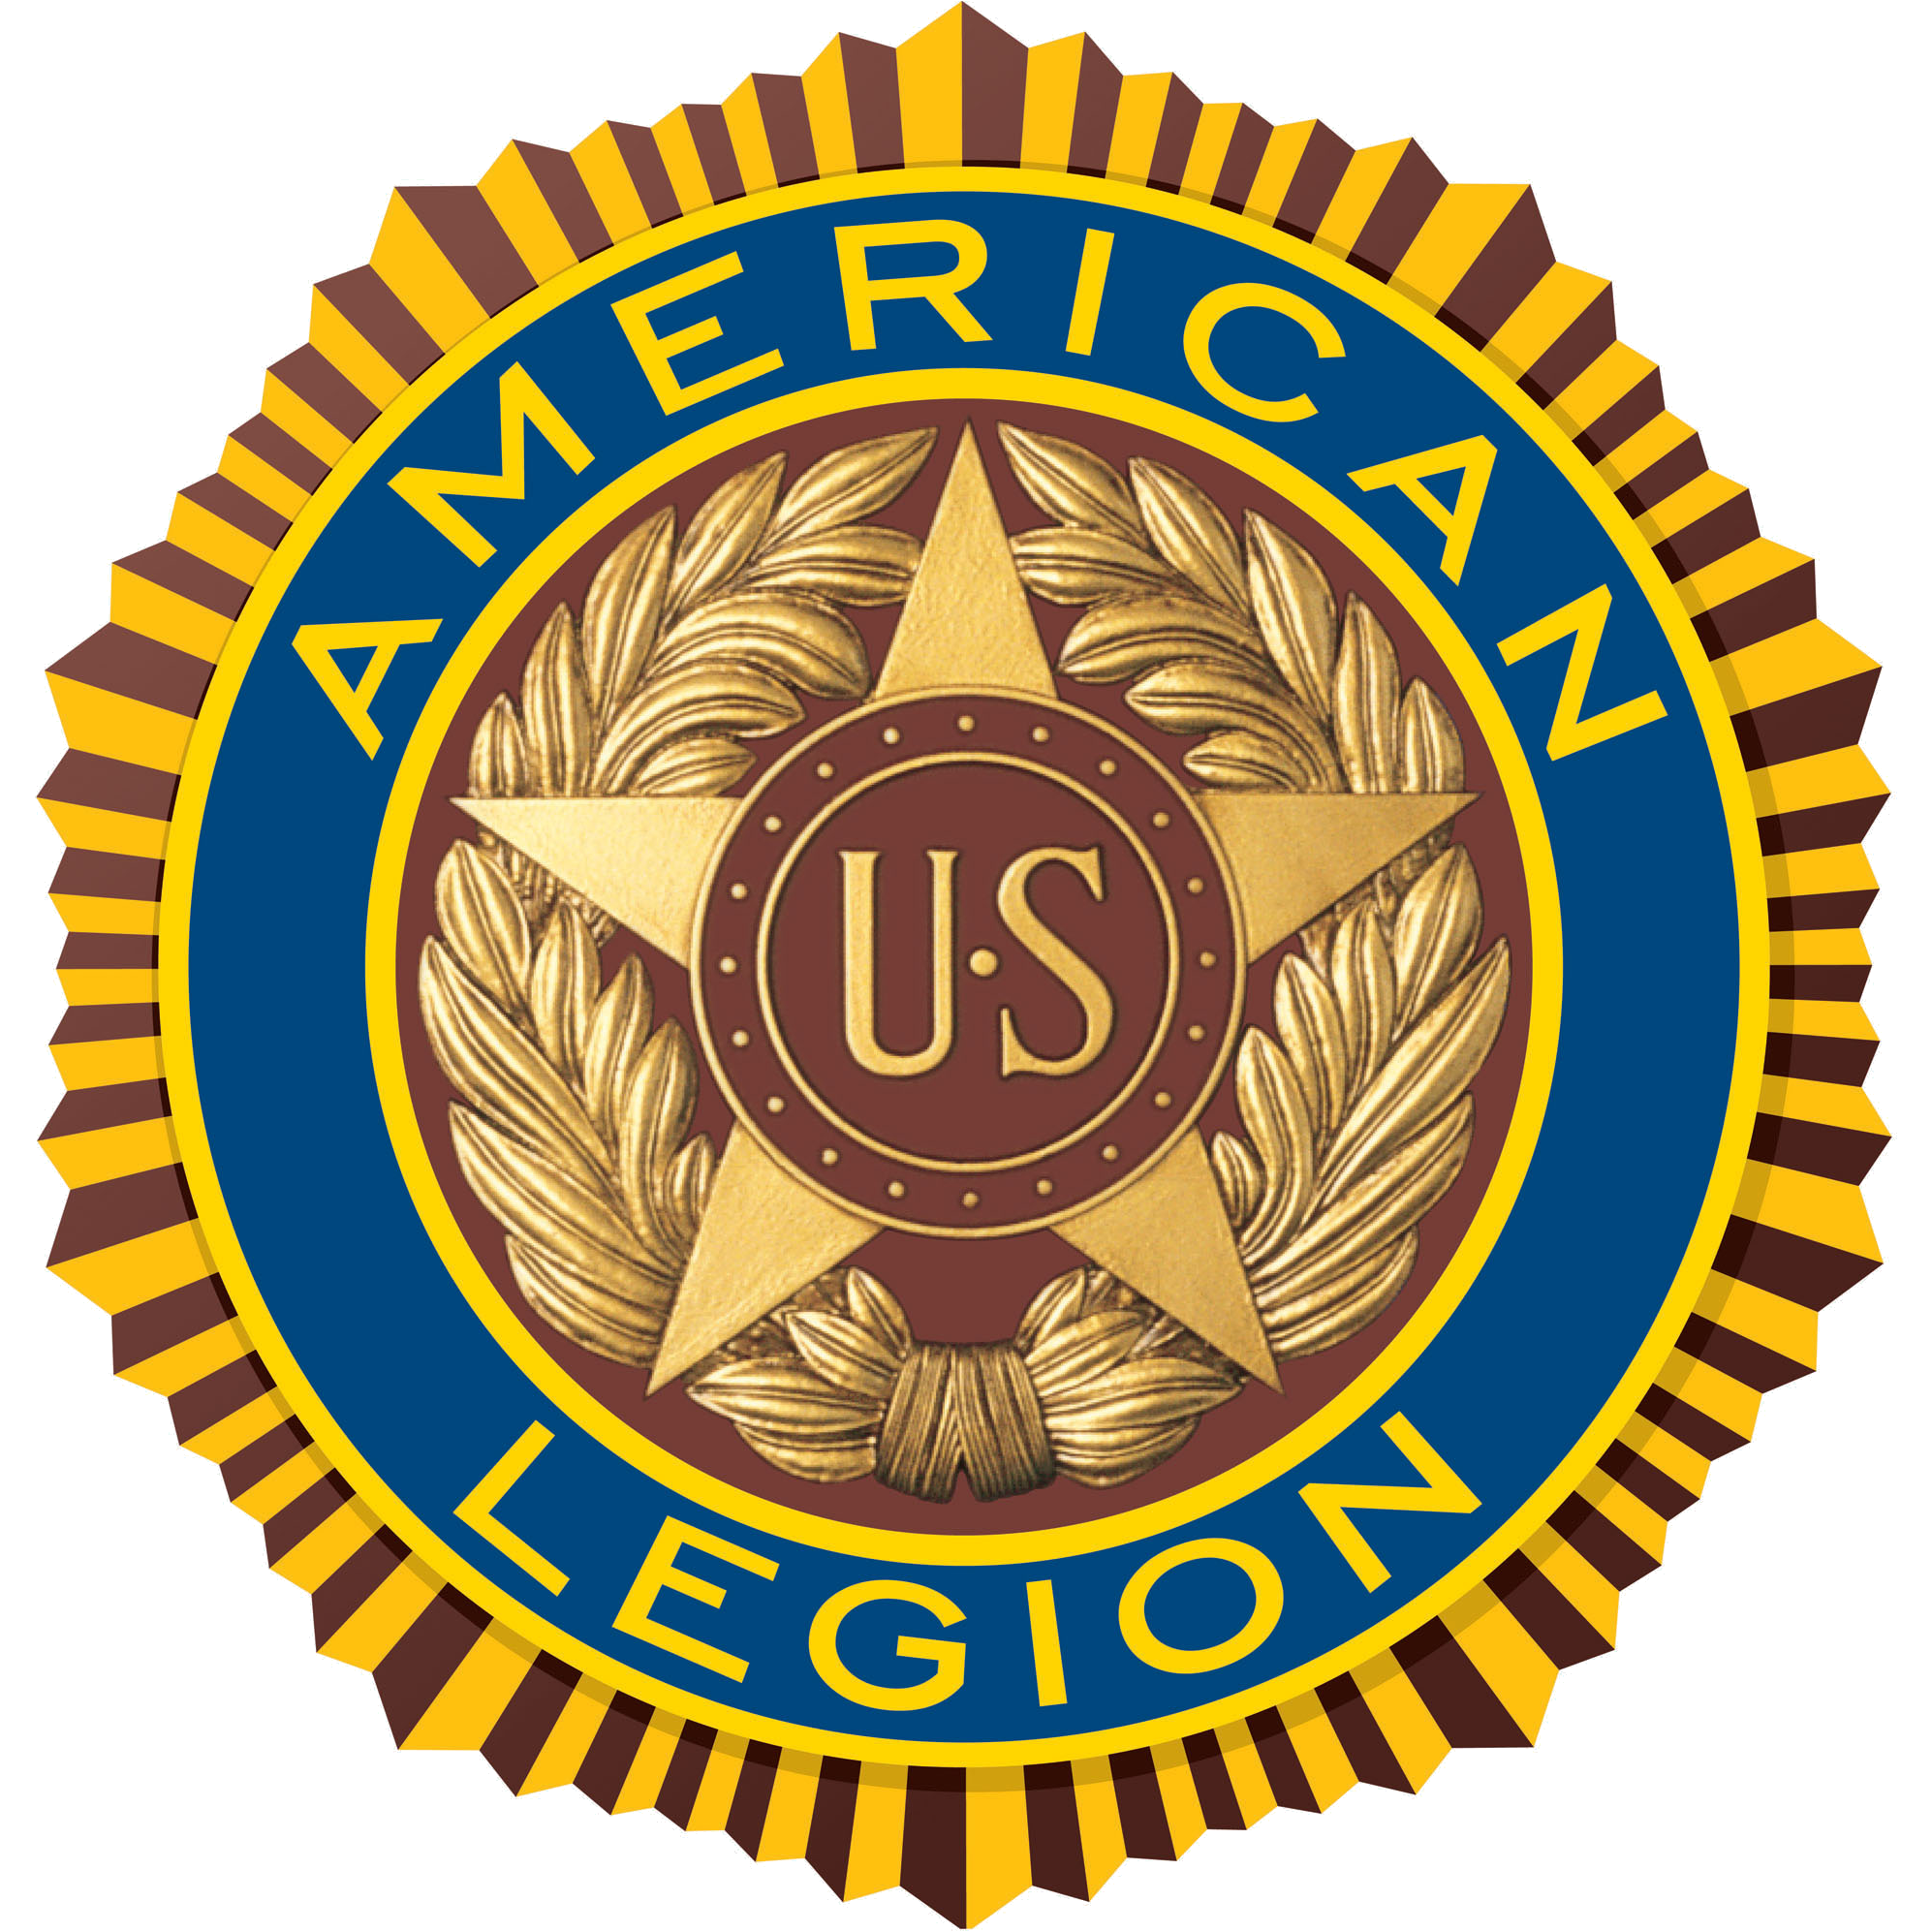 American legion with flag clipart image library American Legion Logo PNG Transparent American Legion Logo.PNG Images ... image library